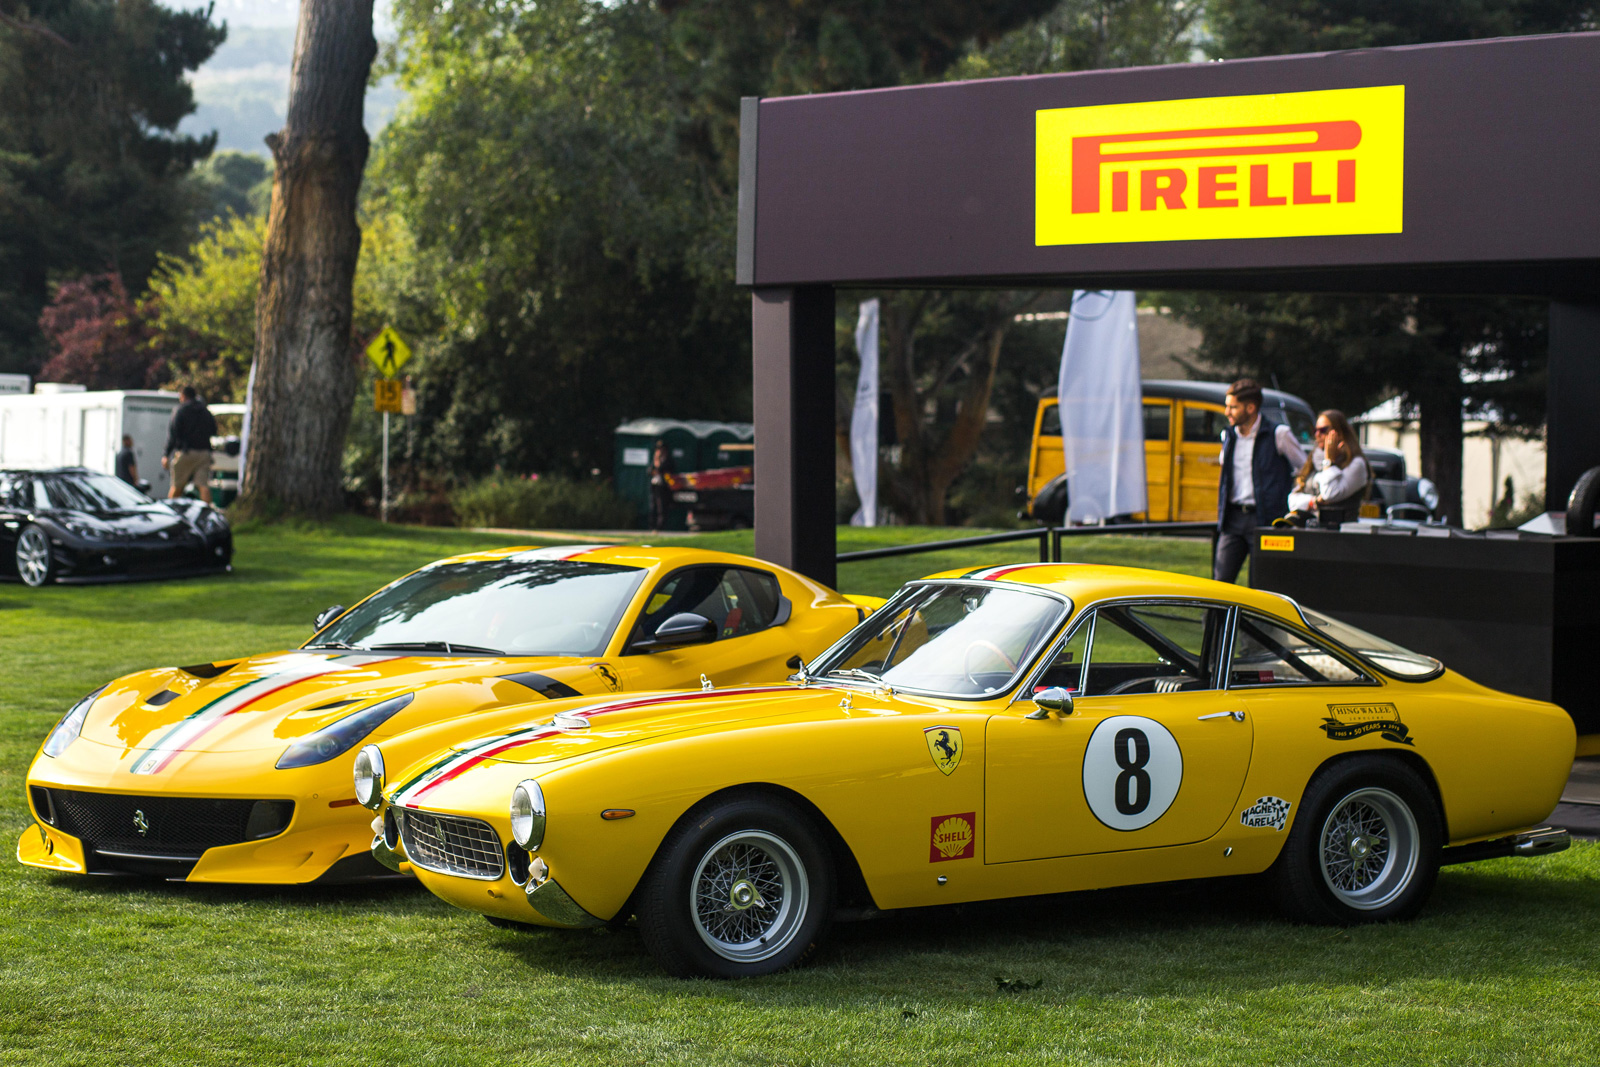 Pirelli Expands Its Tire Offerings For Classic Cars